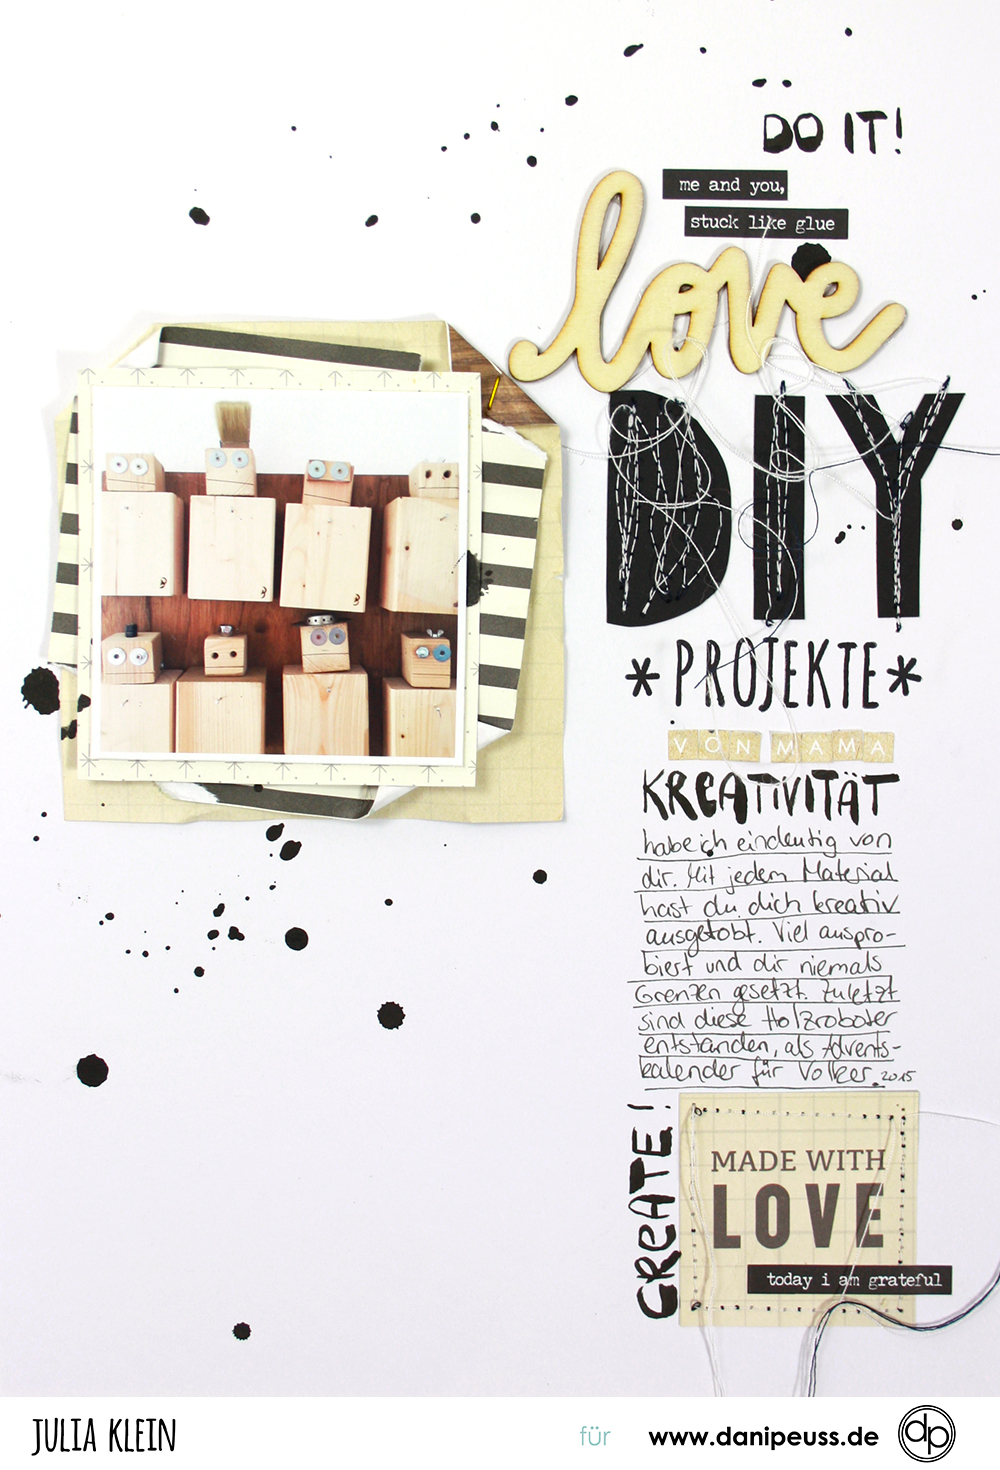 Made with love - Bastelprojekte für danipeuss.de | Juni 2017 | Scrapbooking, Karten basteln und Videos | piecesforhappiness.de